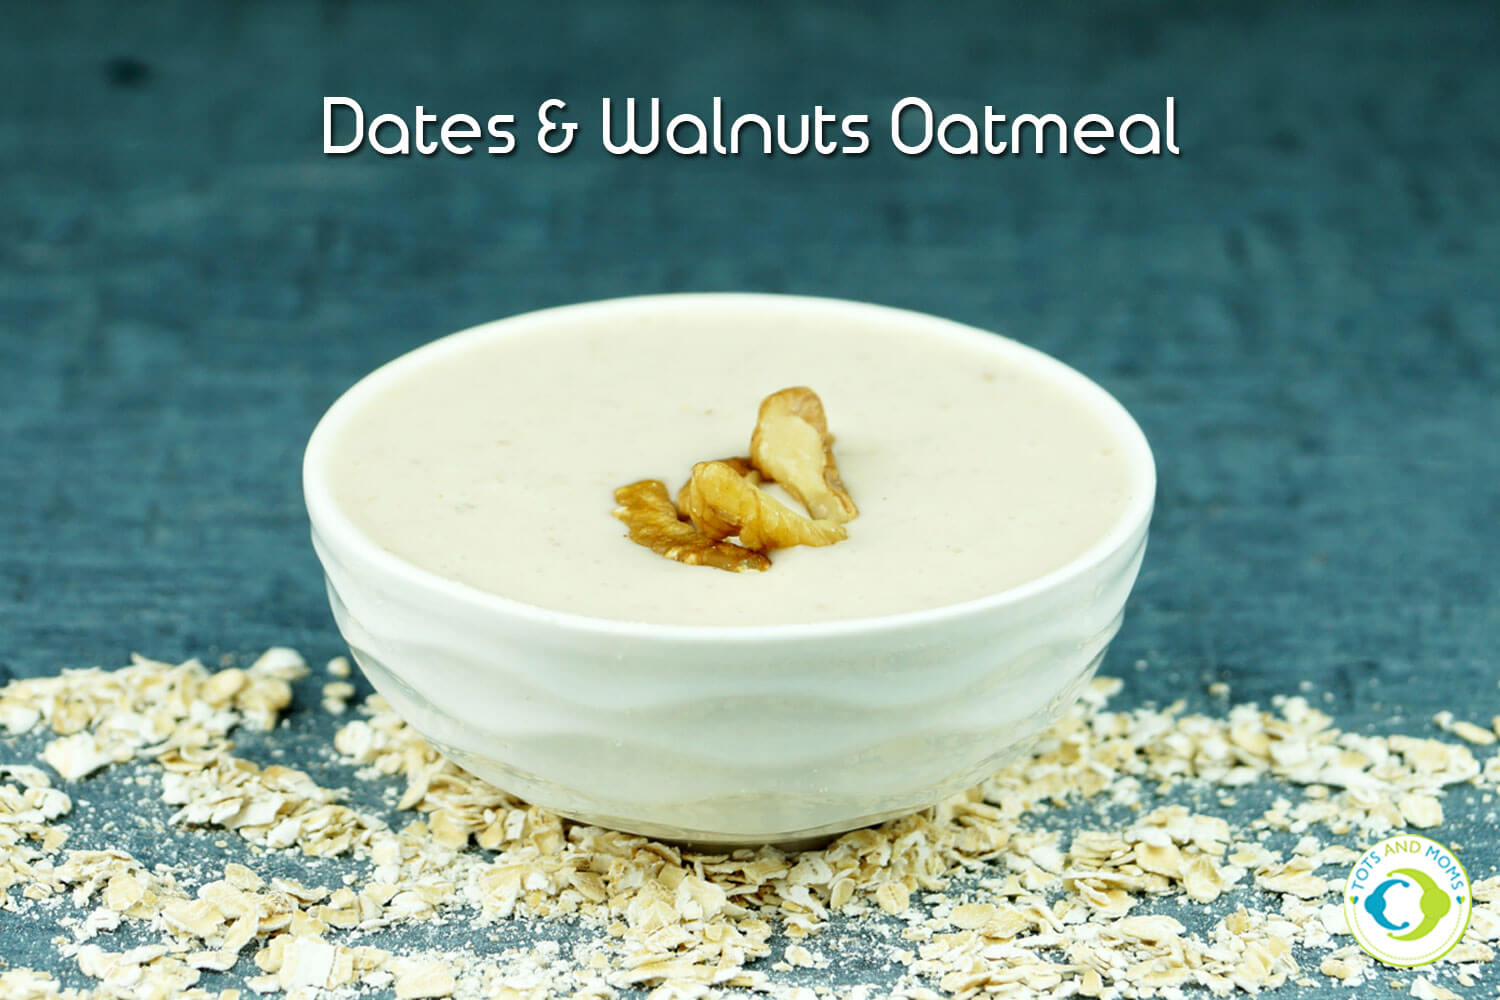 DATES & WALNUTS OATMEAL for Toddlers, Kids & Family